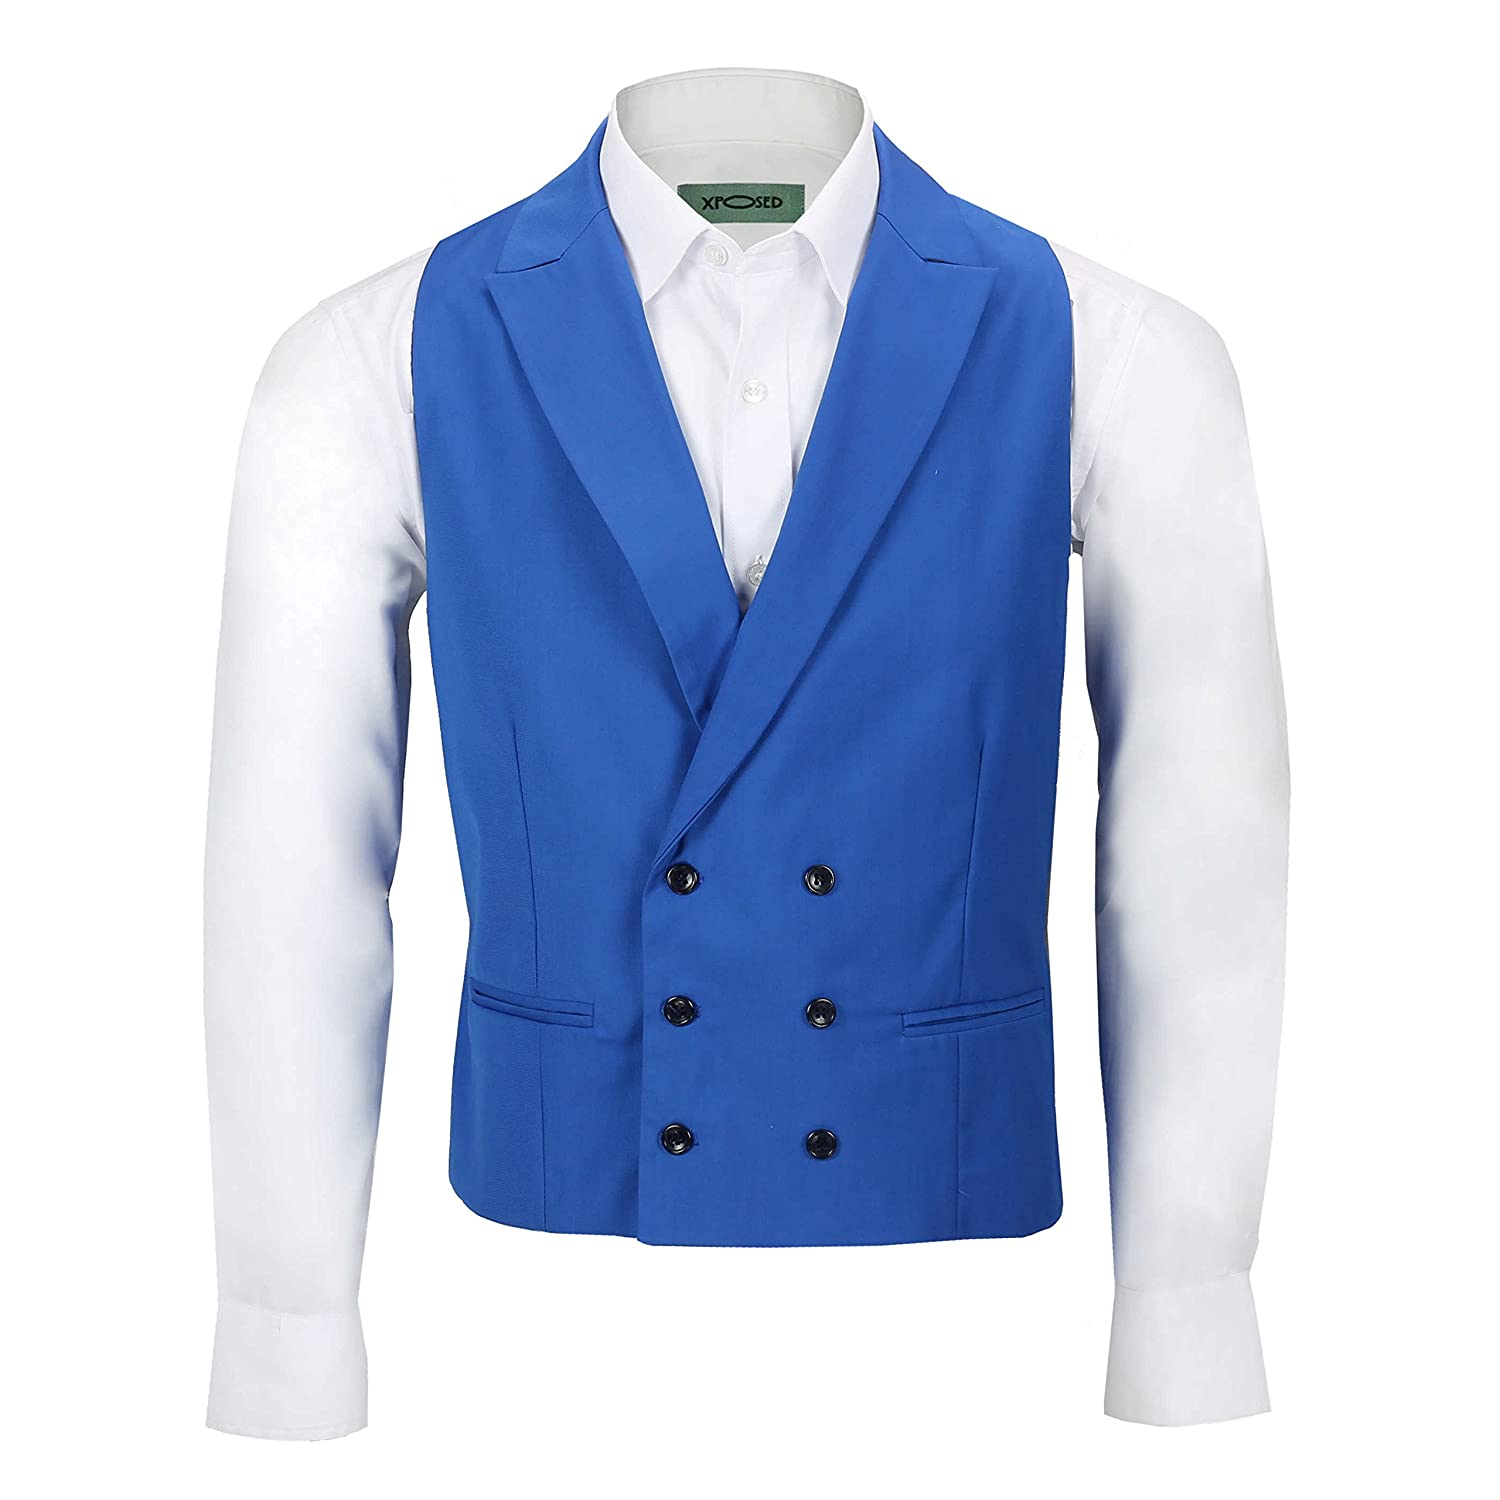 Xposed Mens Vintage Double Breasted Collar Waistcoat Retro Peak Lapel Tailored Fit Smart Casual Vest